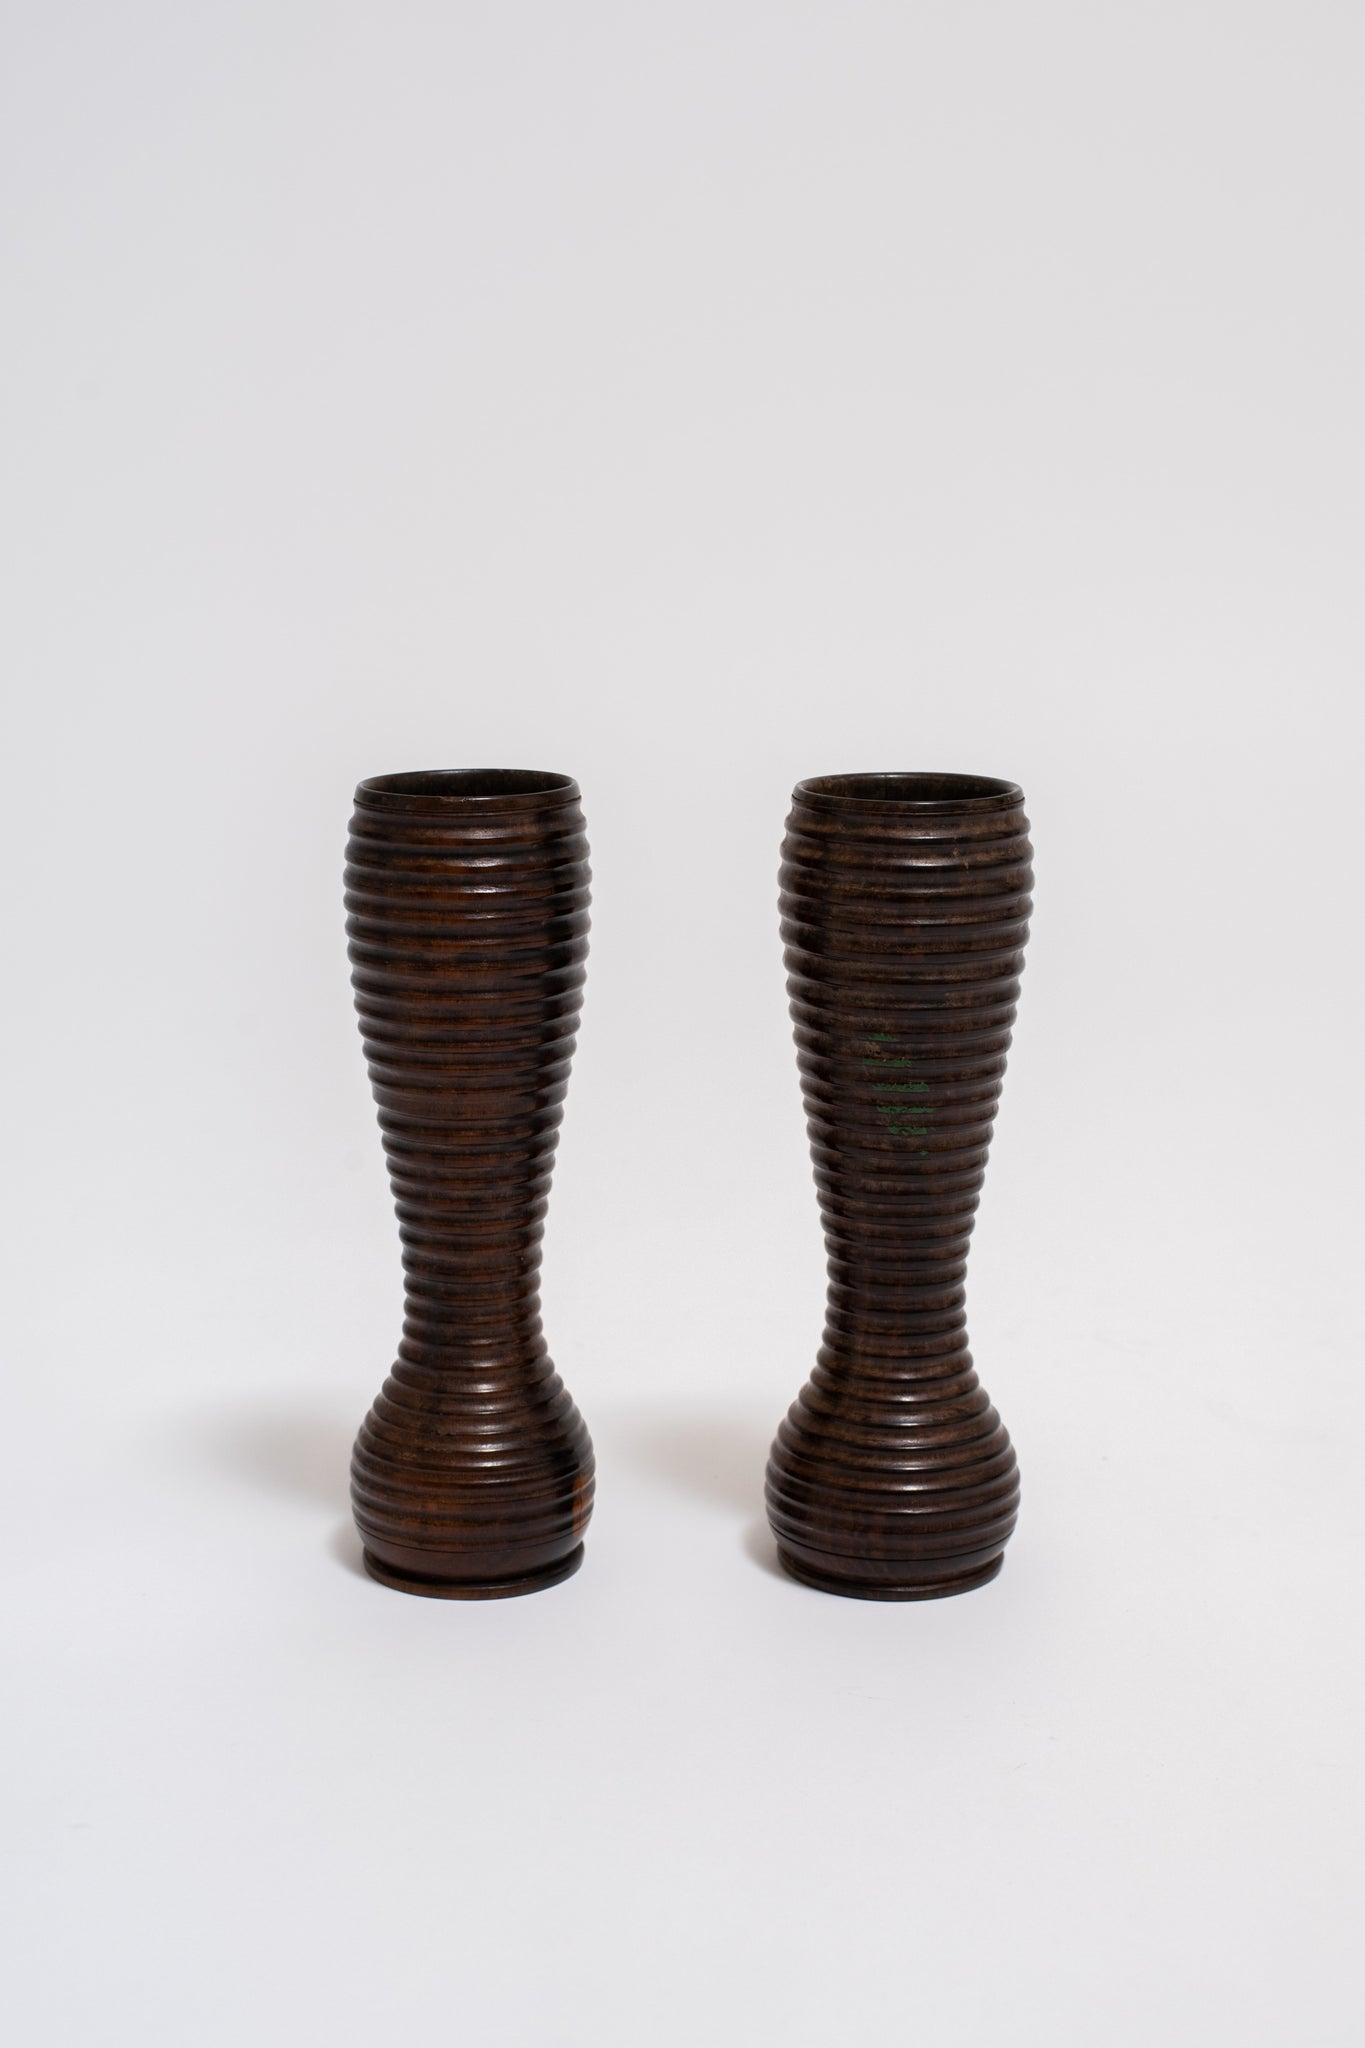 PAIR OF TURNED WOOD VASES, C. EARLY 20TH CENTURY